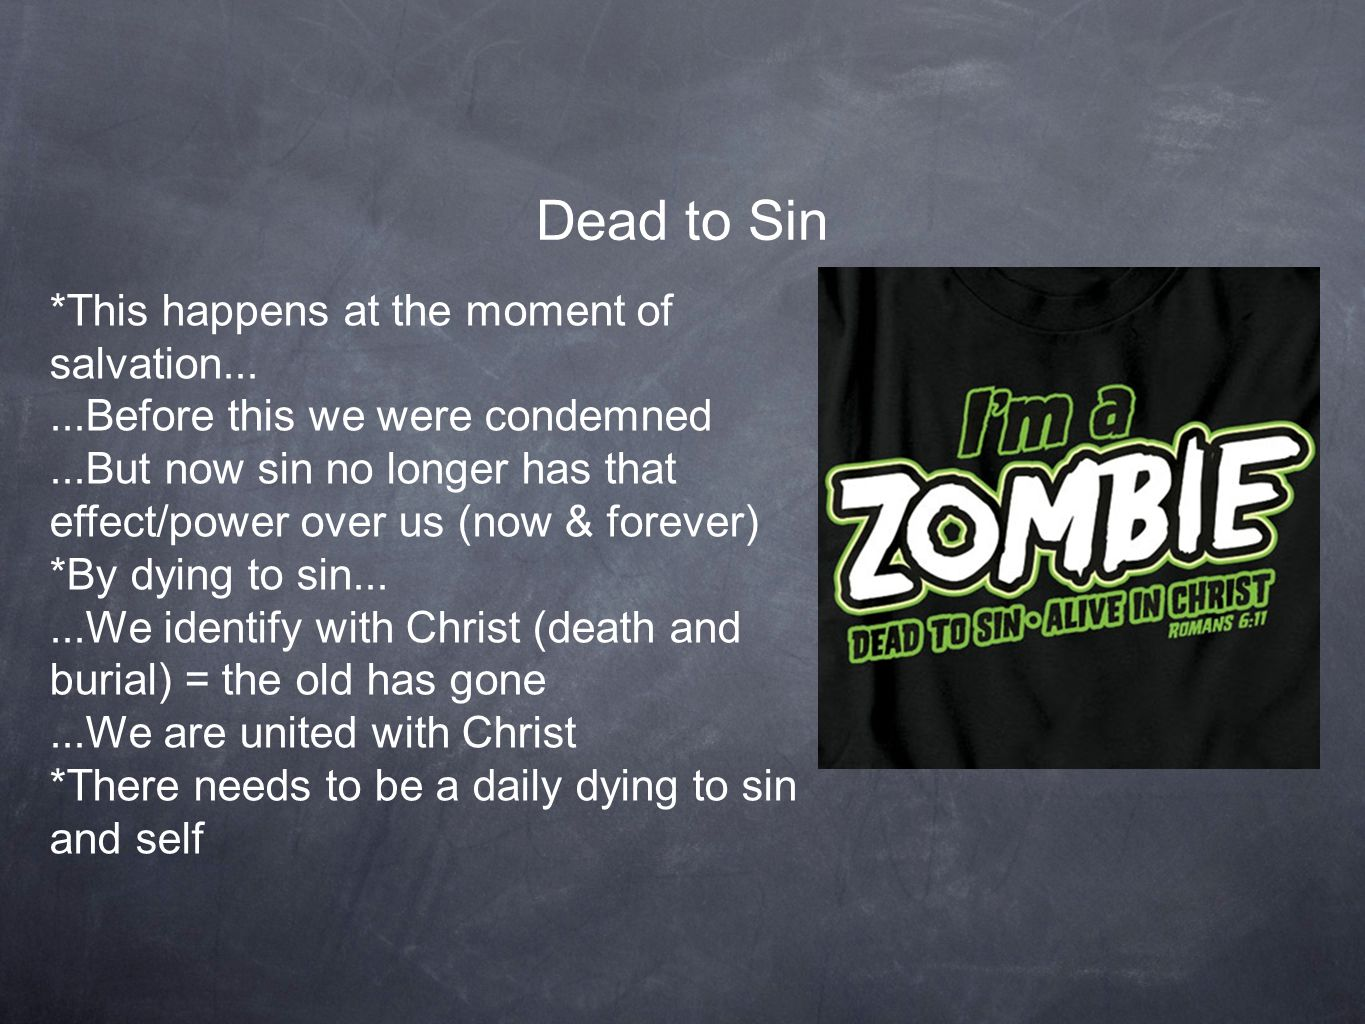 Dead to Sin *This happens at the moment of salvation......Before this we were condemned...But now sin no longer has that effect/power over us (now & f